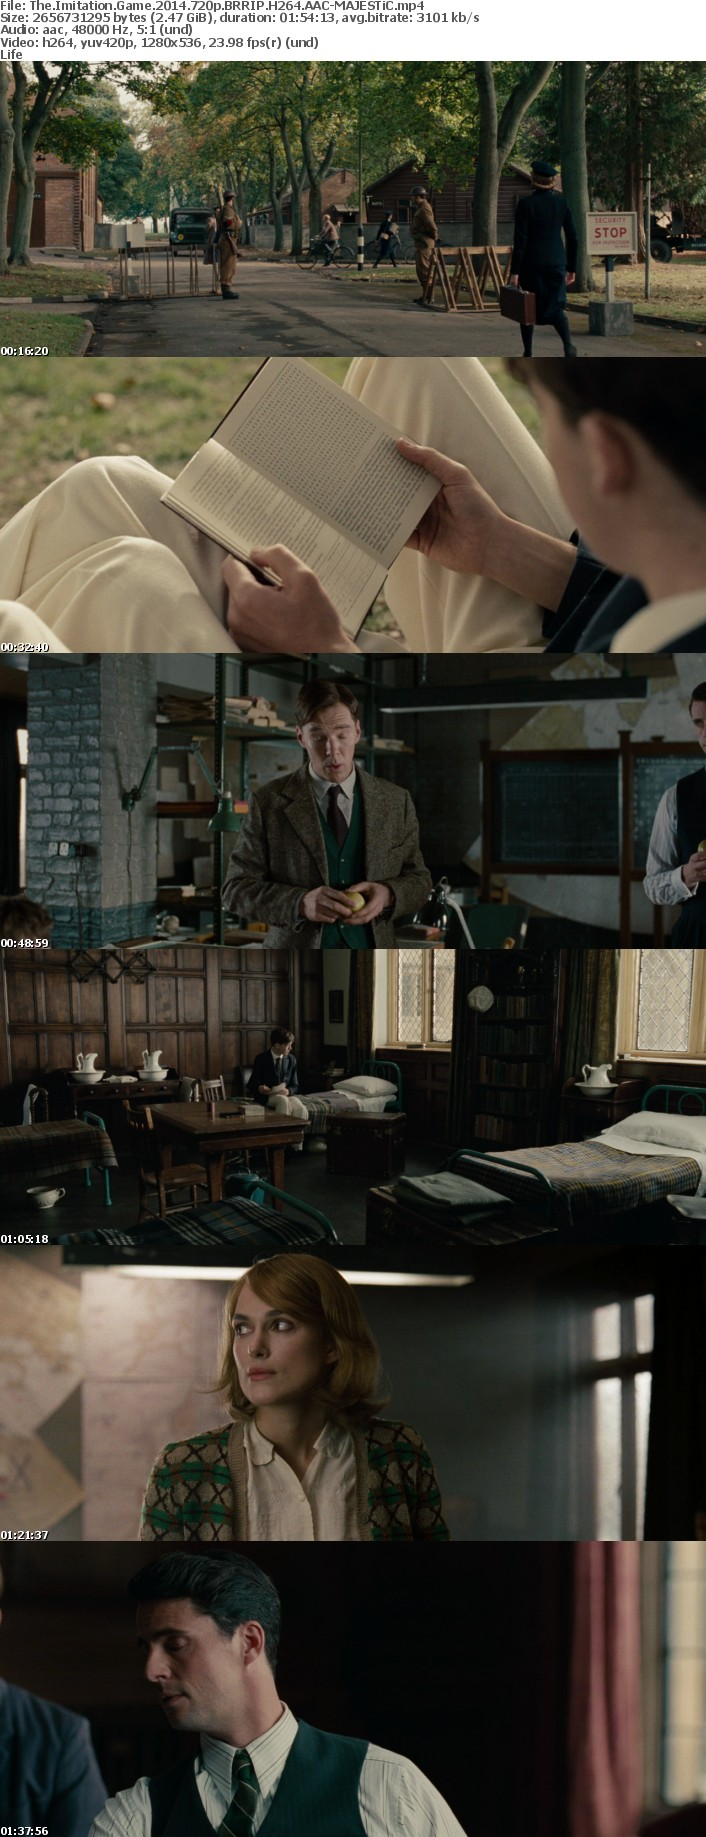 The Imitation Game 2014 720p BRRIP H264 AAC-MAJESTiC